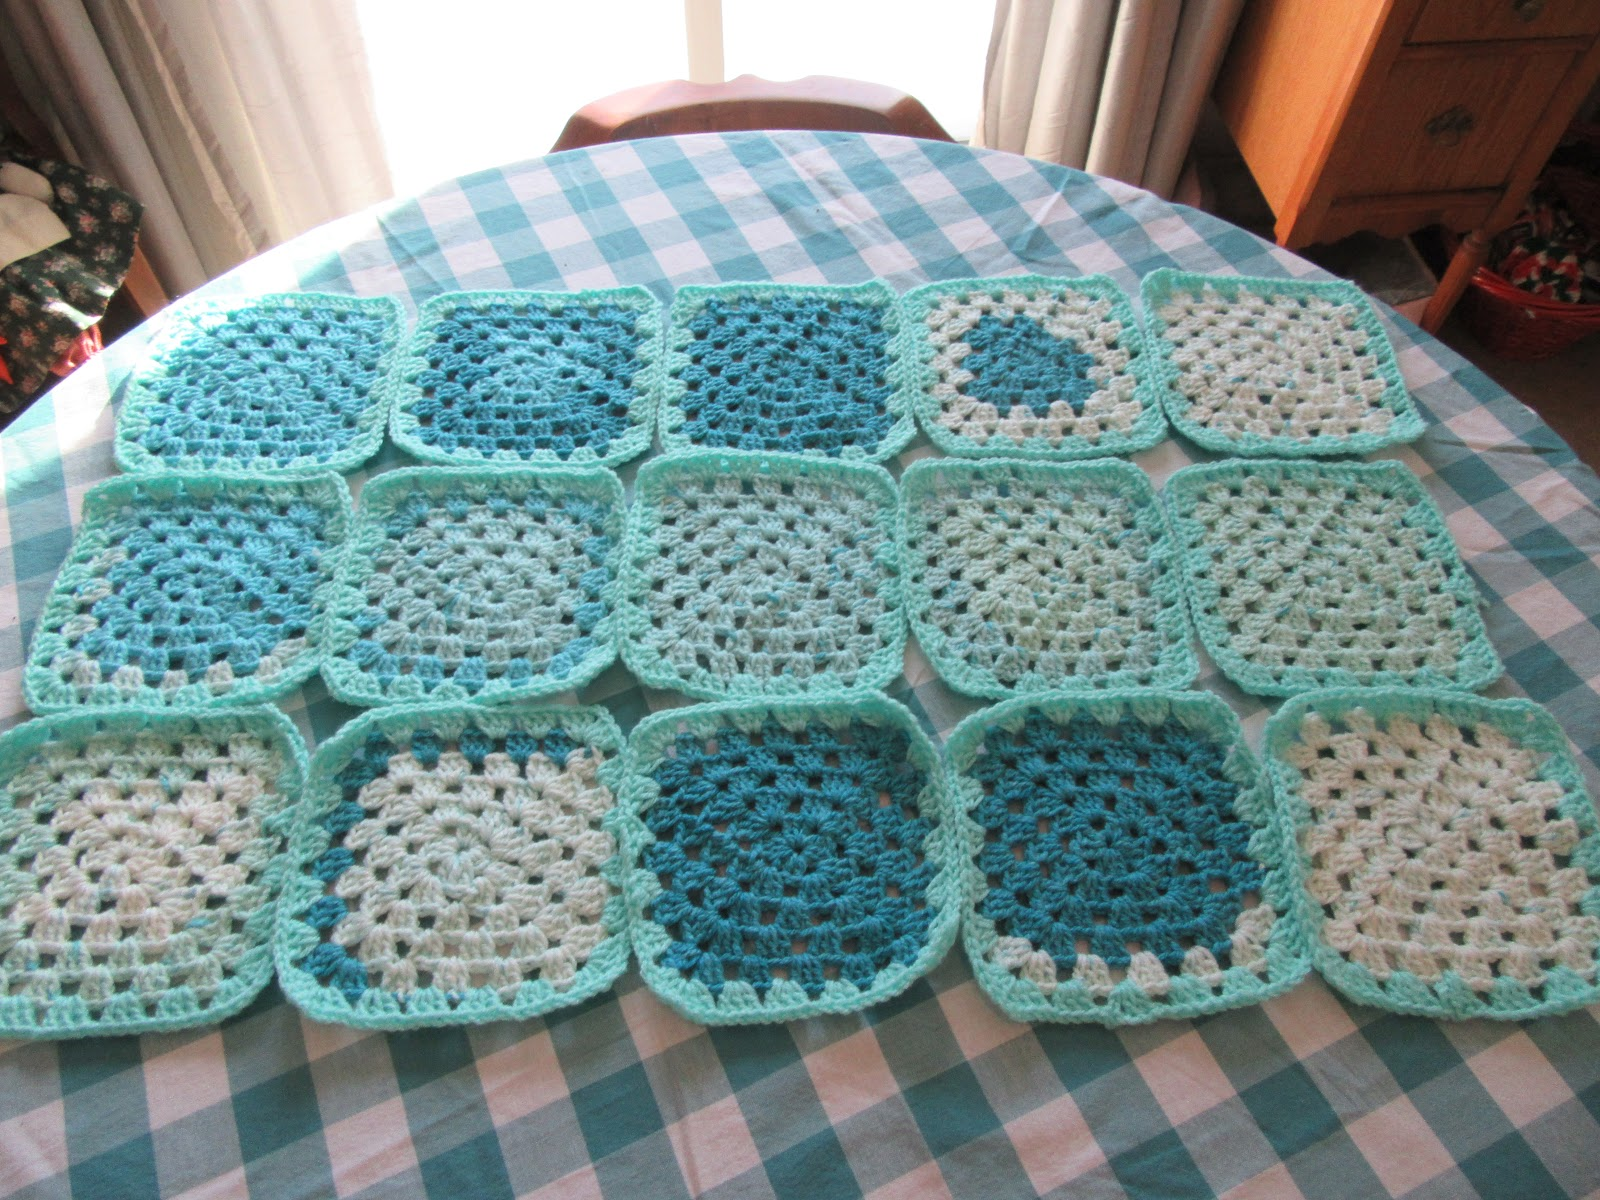 I Made Squares That Were A Bit Large Center And Four Rows Of Faerie Cakes One Row Minty The Color Just Unfolds So Beautifully Frames